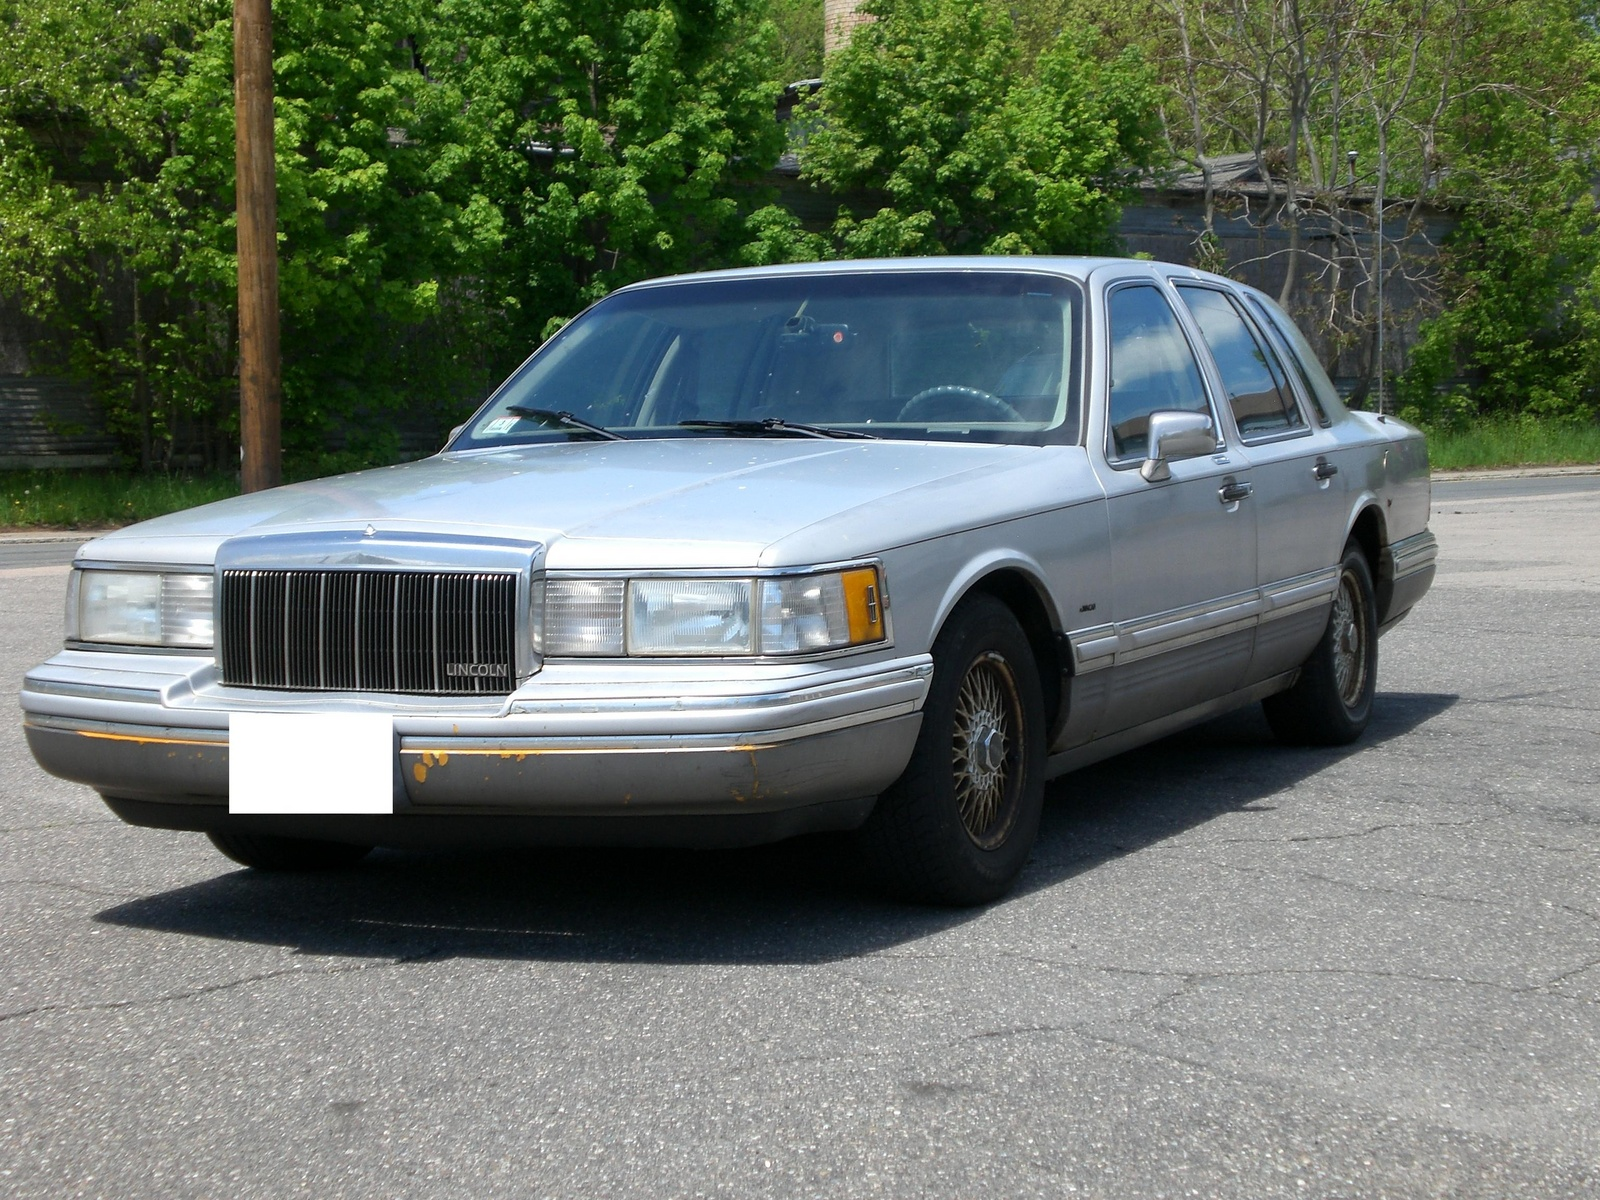 569 Lincoln Town Car 1995 Lowrider Wallpaper 8 as well Watch as well Watch in addition Exterior also Lincoln Continental. on 2001 lincoln town car signature